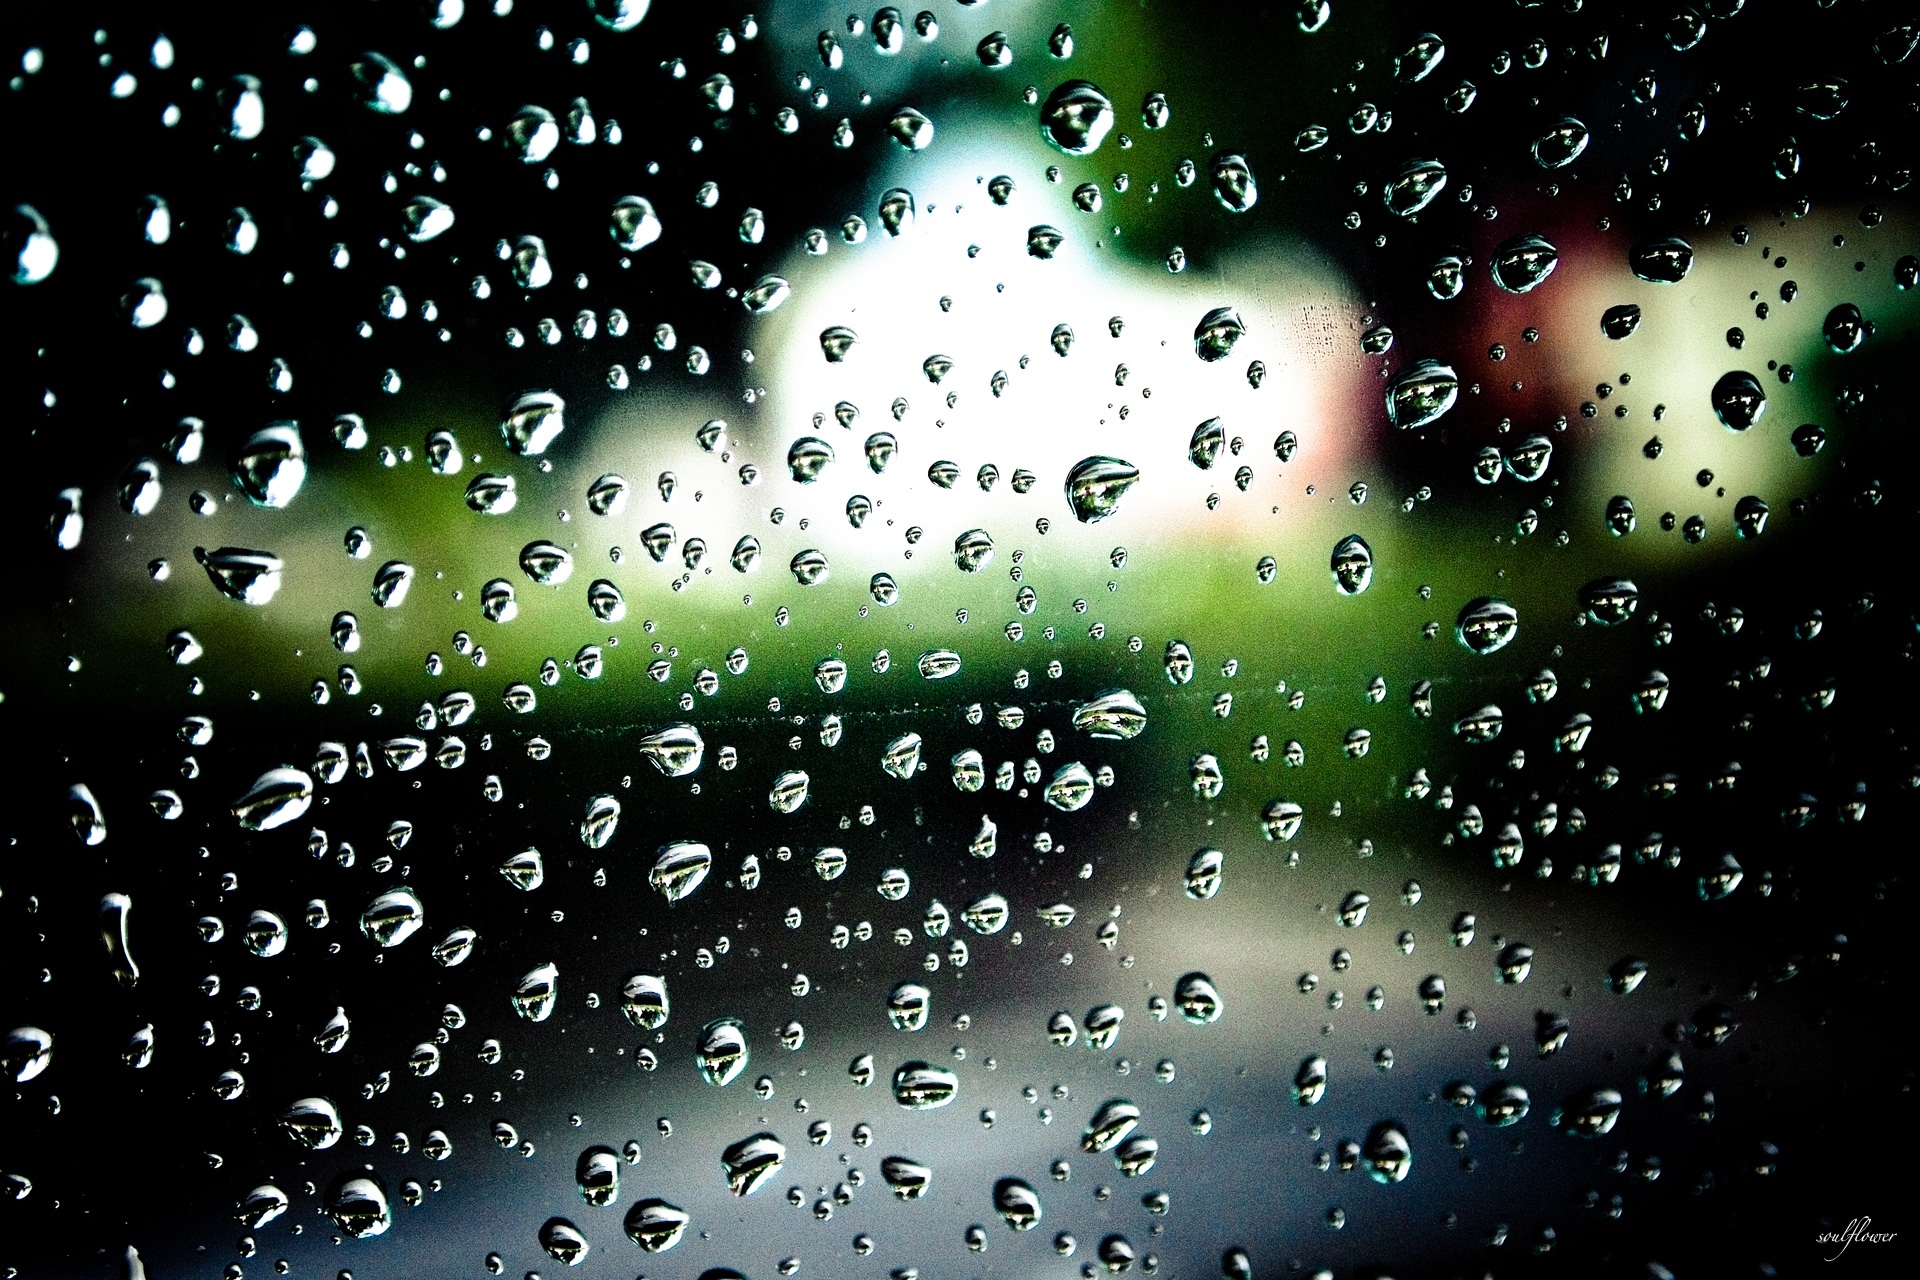 Rainy Season Wallpapers With Quotes Hd Raindrops On Window Wallpapers And Images Wallpapers